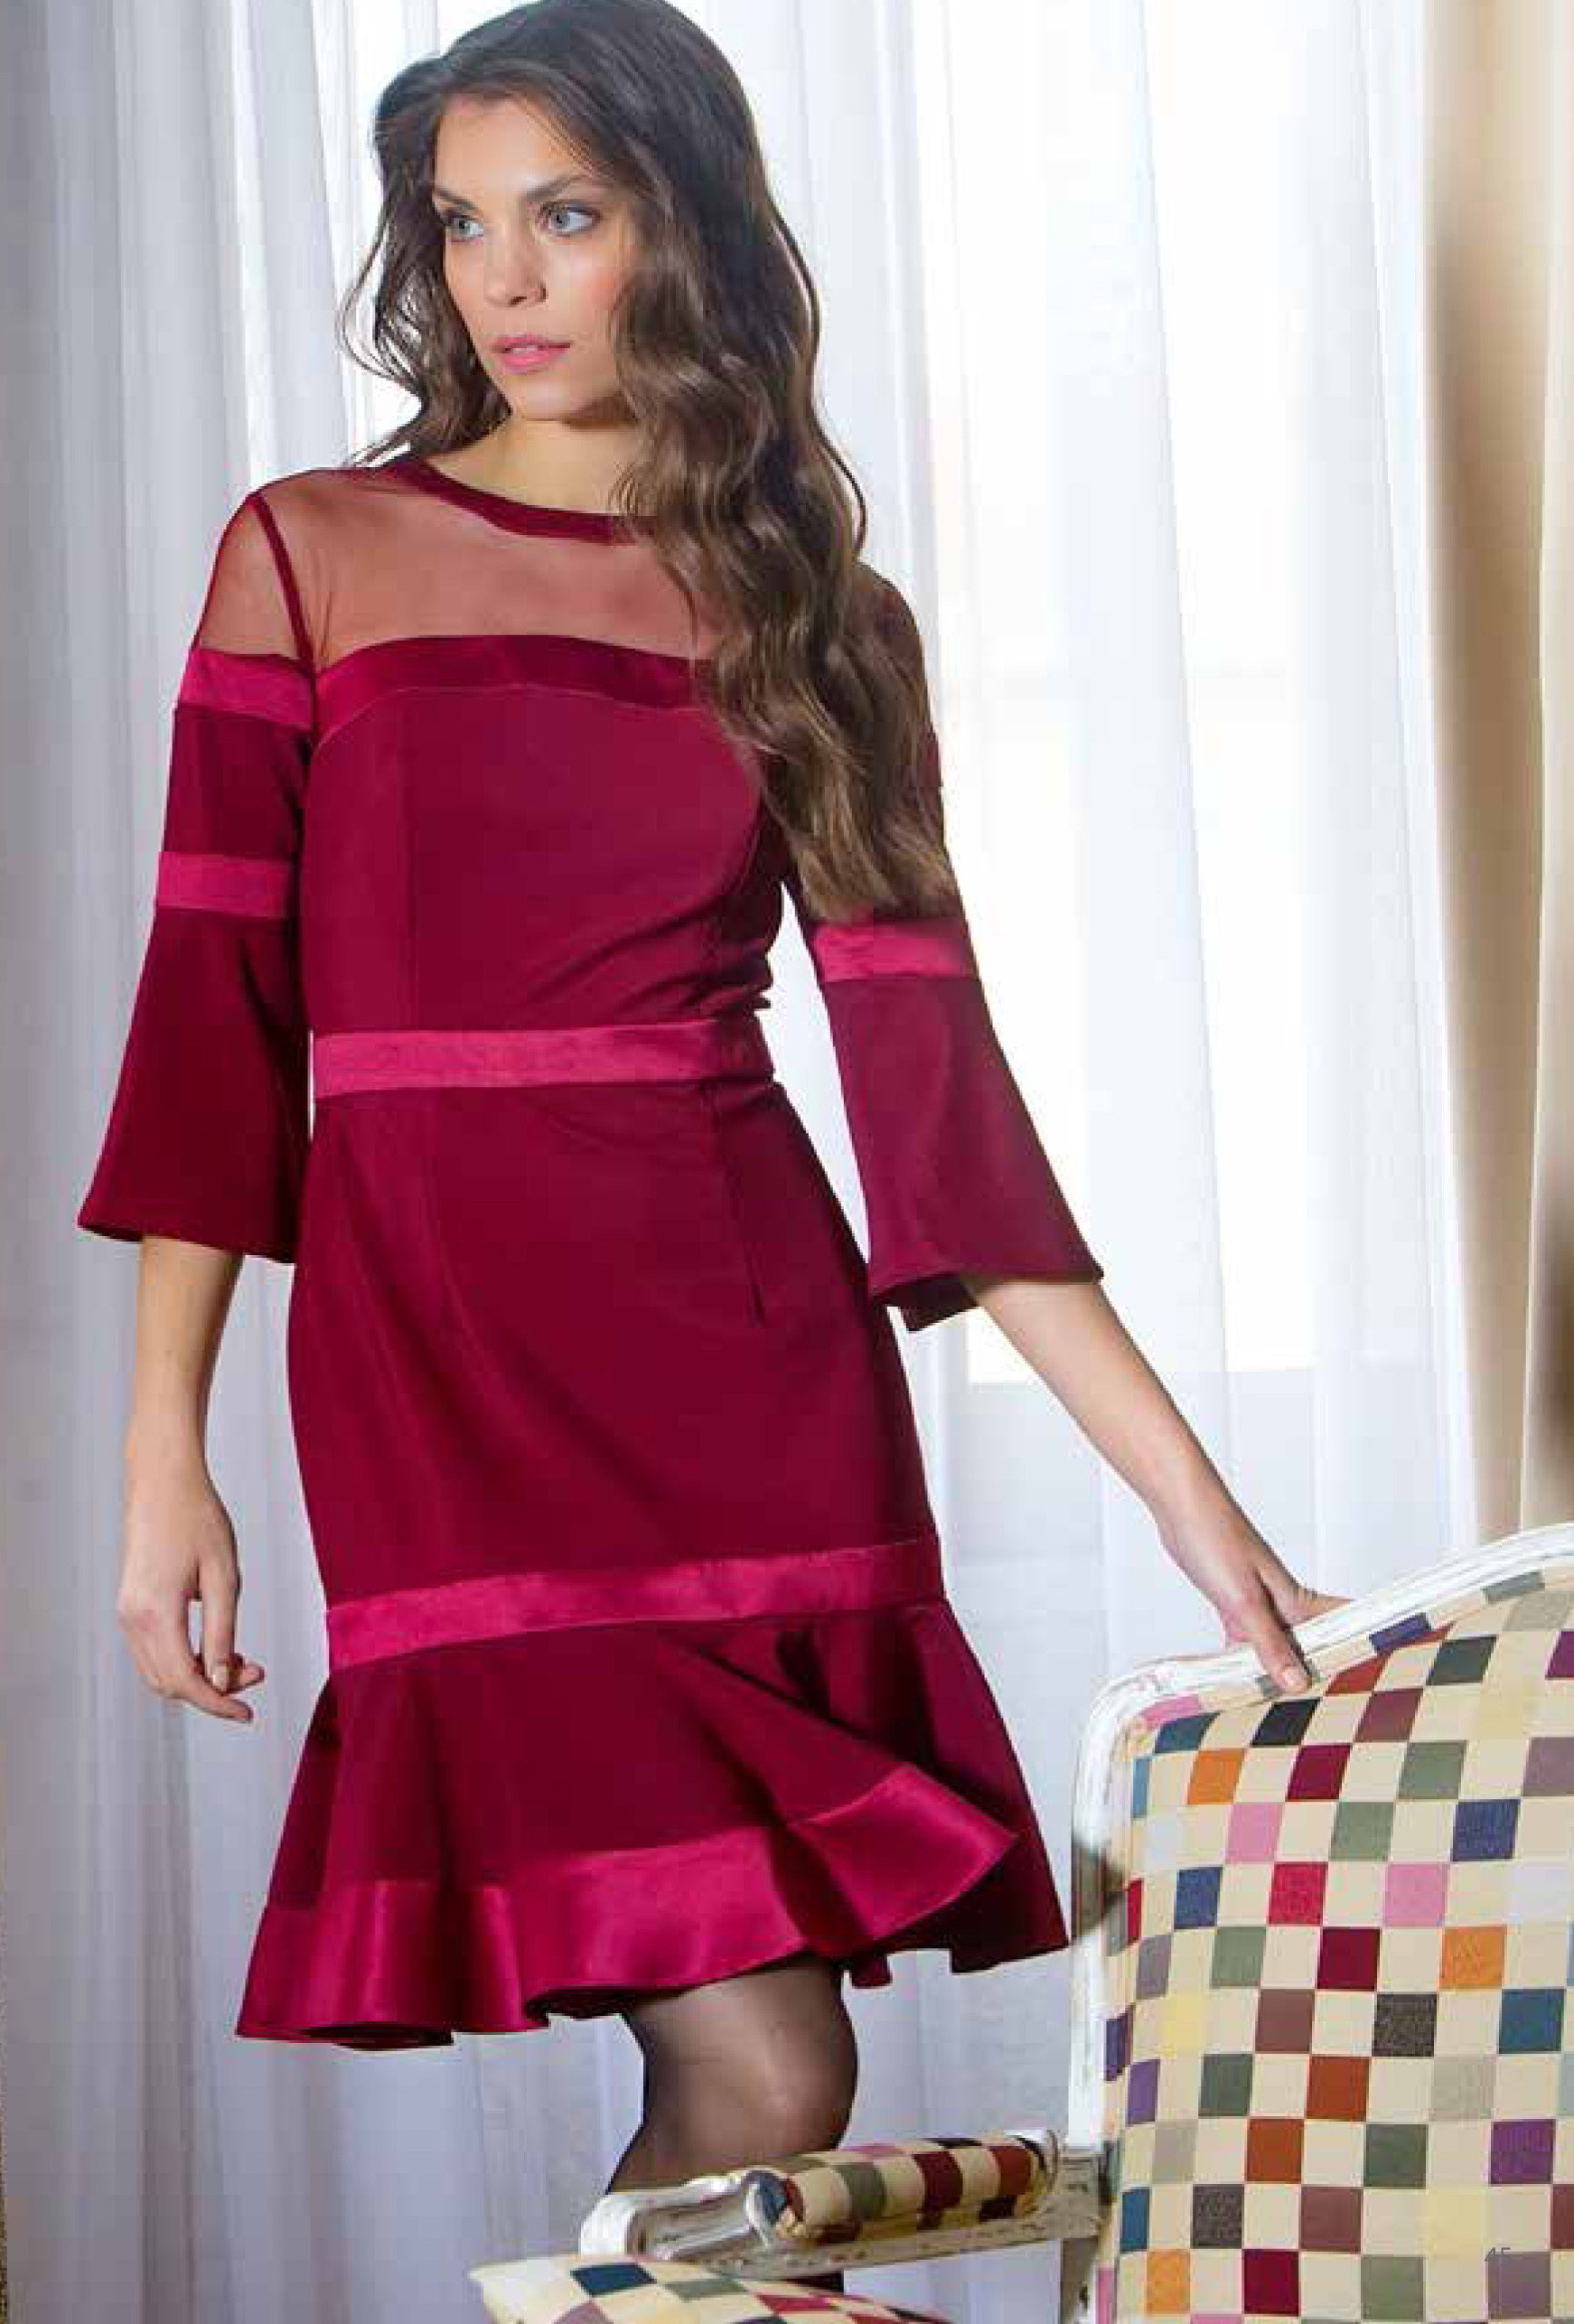 Paul Brial: Irresistible Ribboned Midi Trumpet Gown (In Cherry & Black!) PB_TENTATION